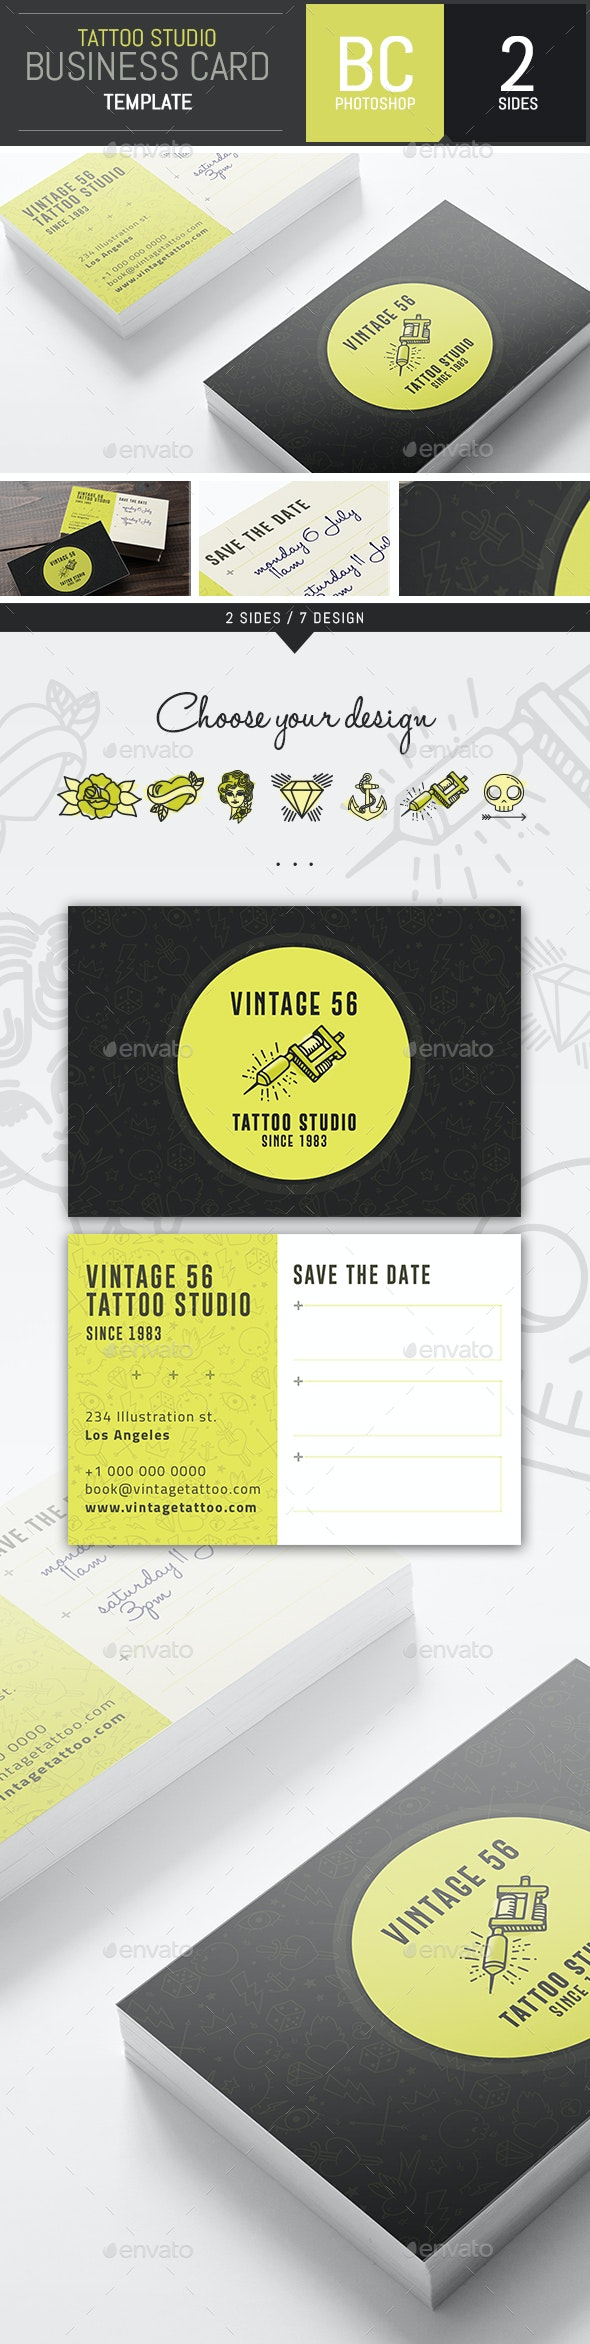 Studio Tattoo Business Card Template - Photoshop - Industry Specific Business Cards